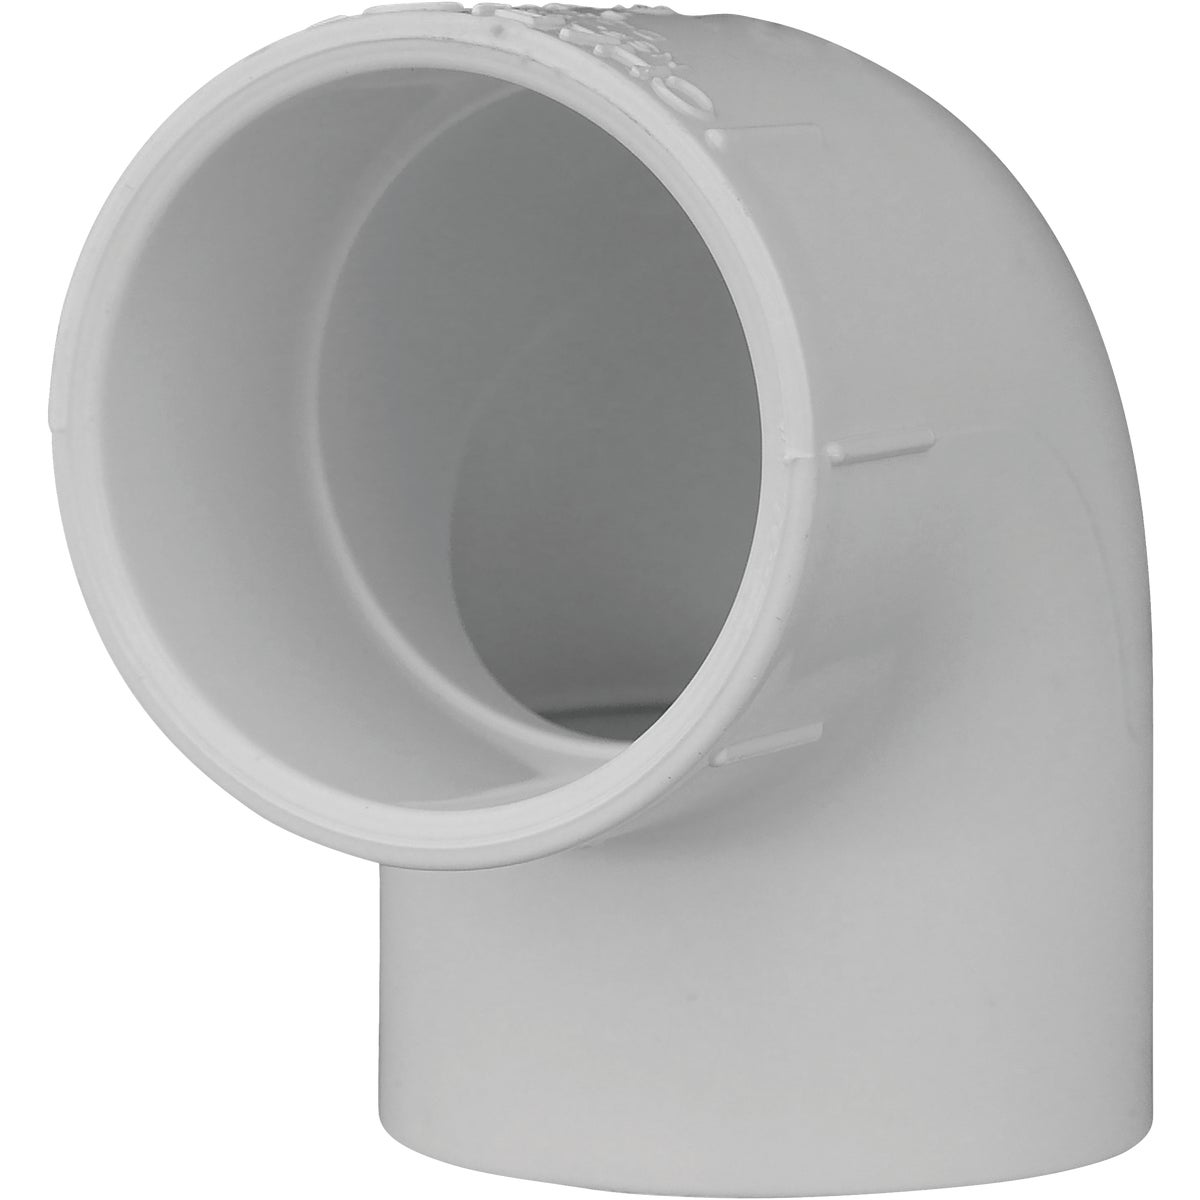 "1-1/2"" 90D S40 PVC ELBOW - 30715 by Genova Inc"